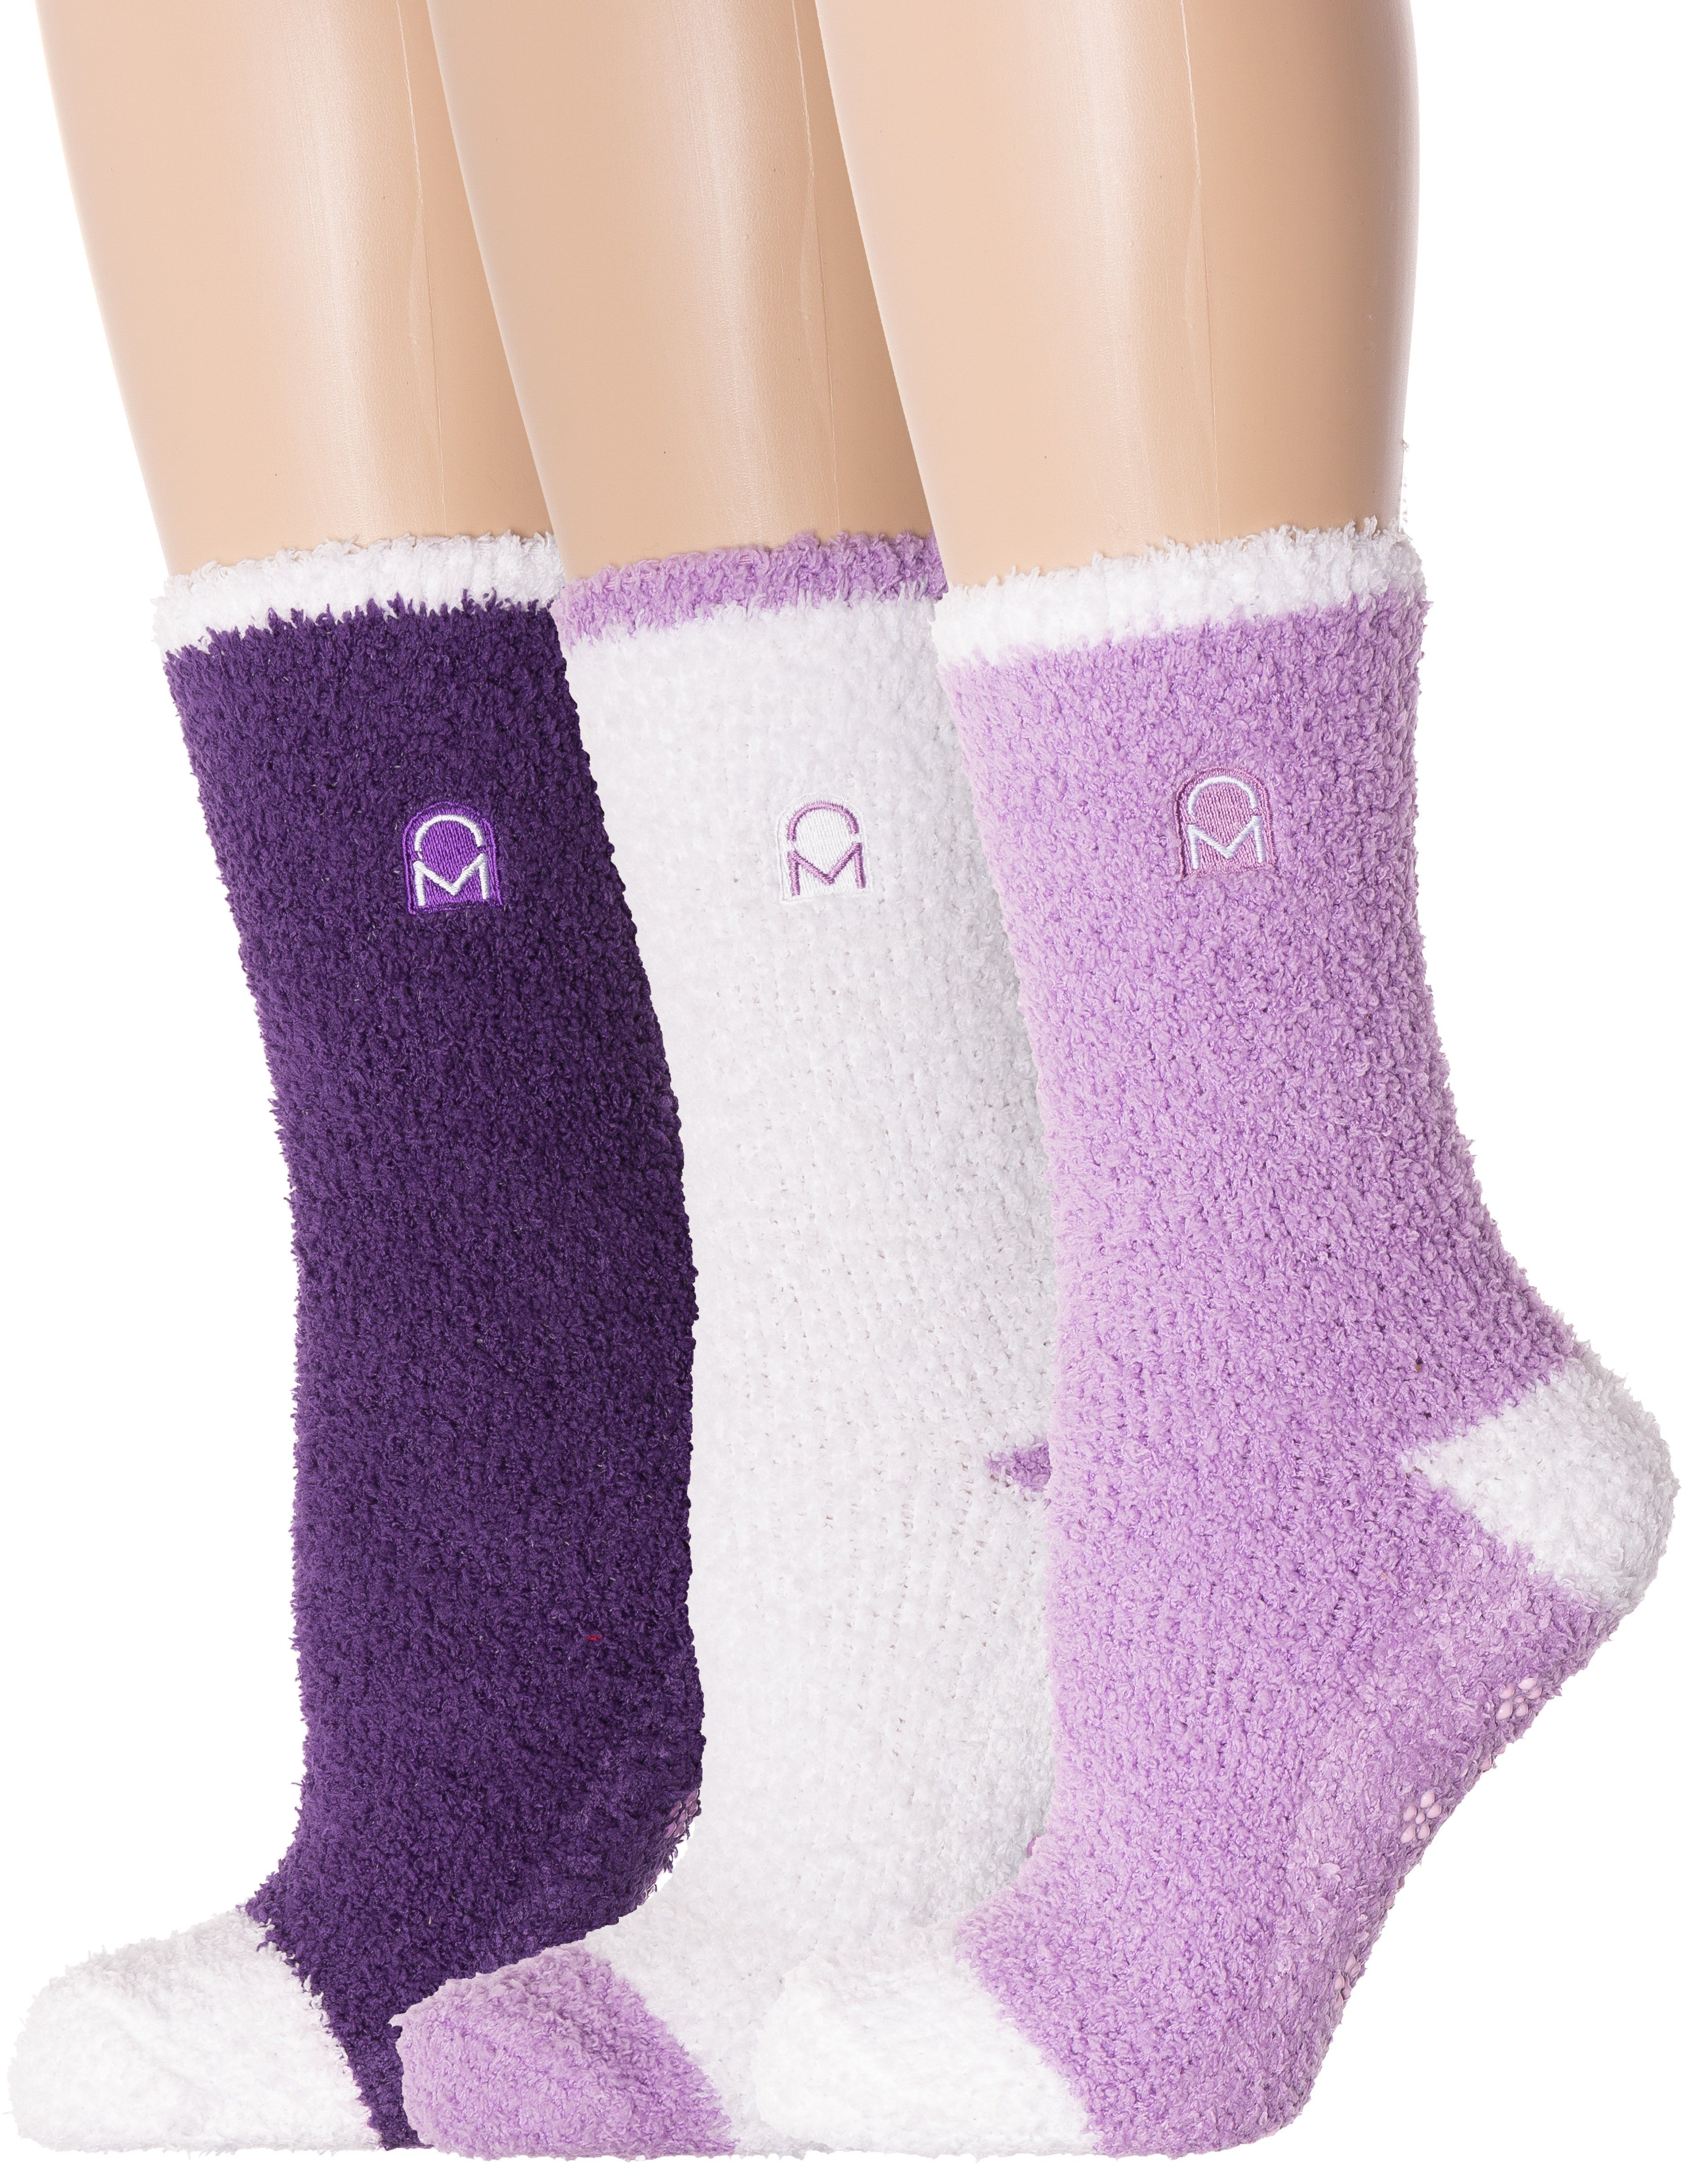 Women's (3 Pairs) Soft Anti-Skid Fuzzy Winter Crew Socks